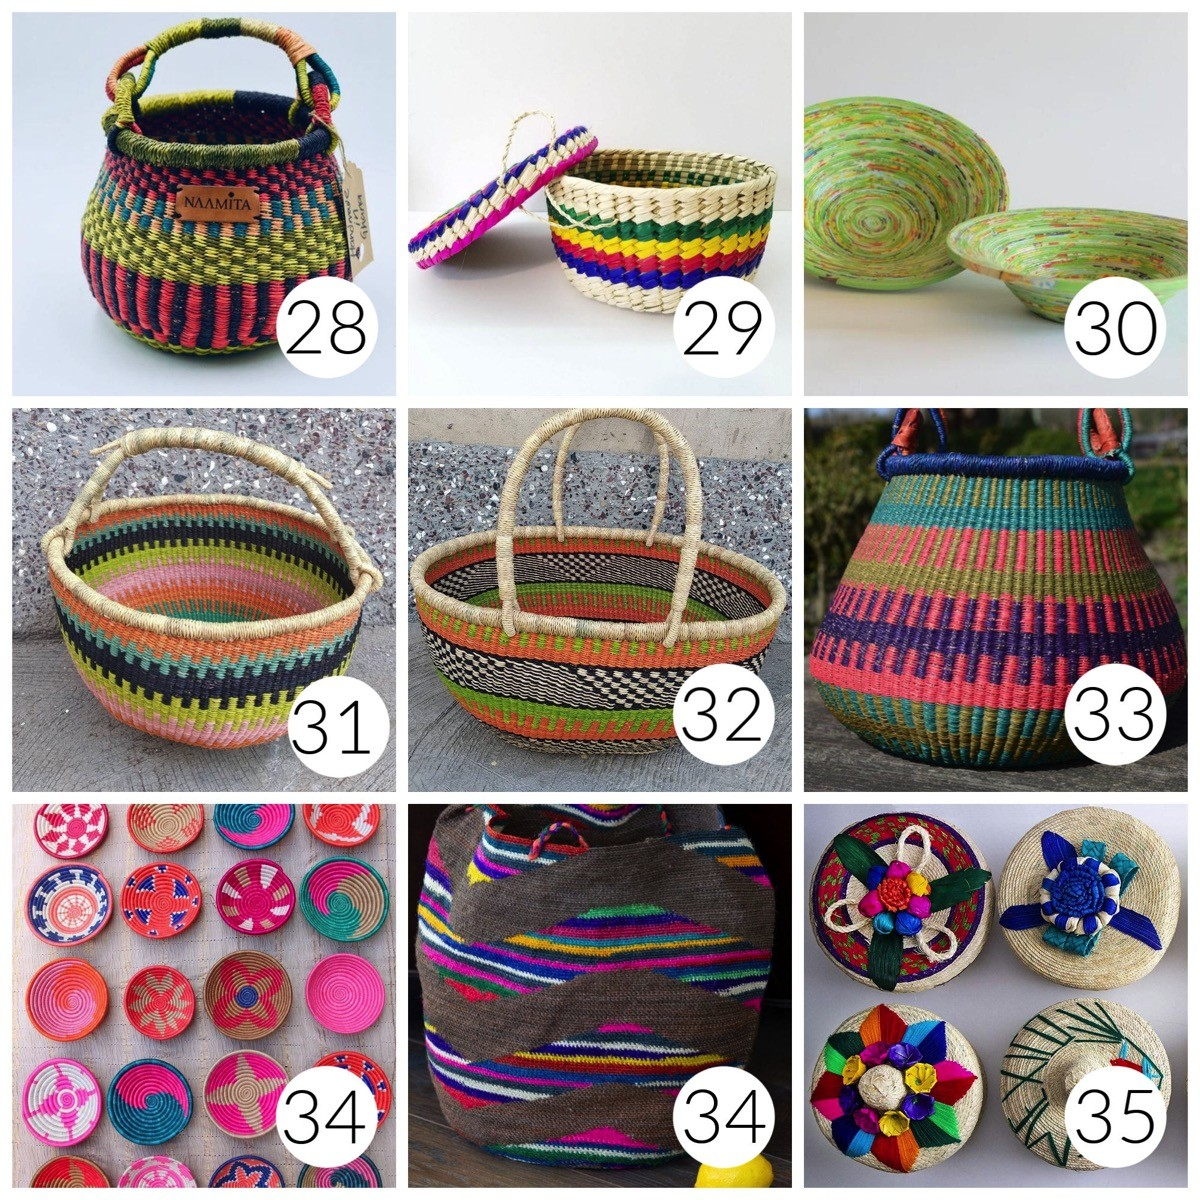 The most colorful baskets online